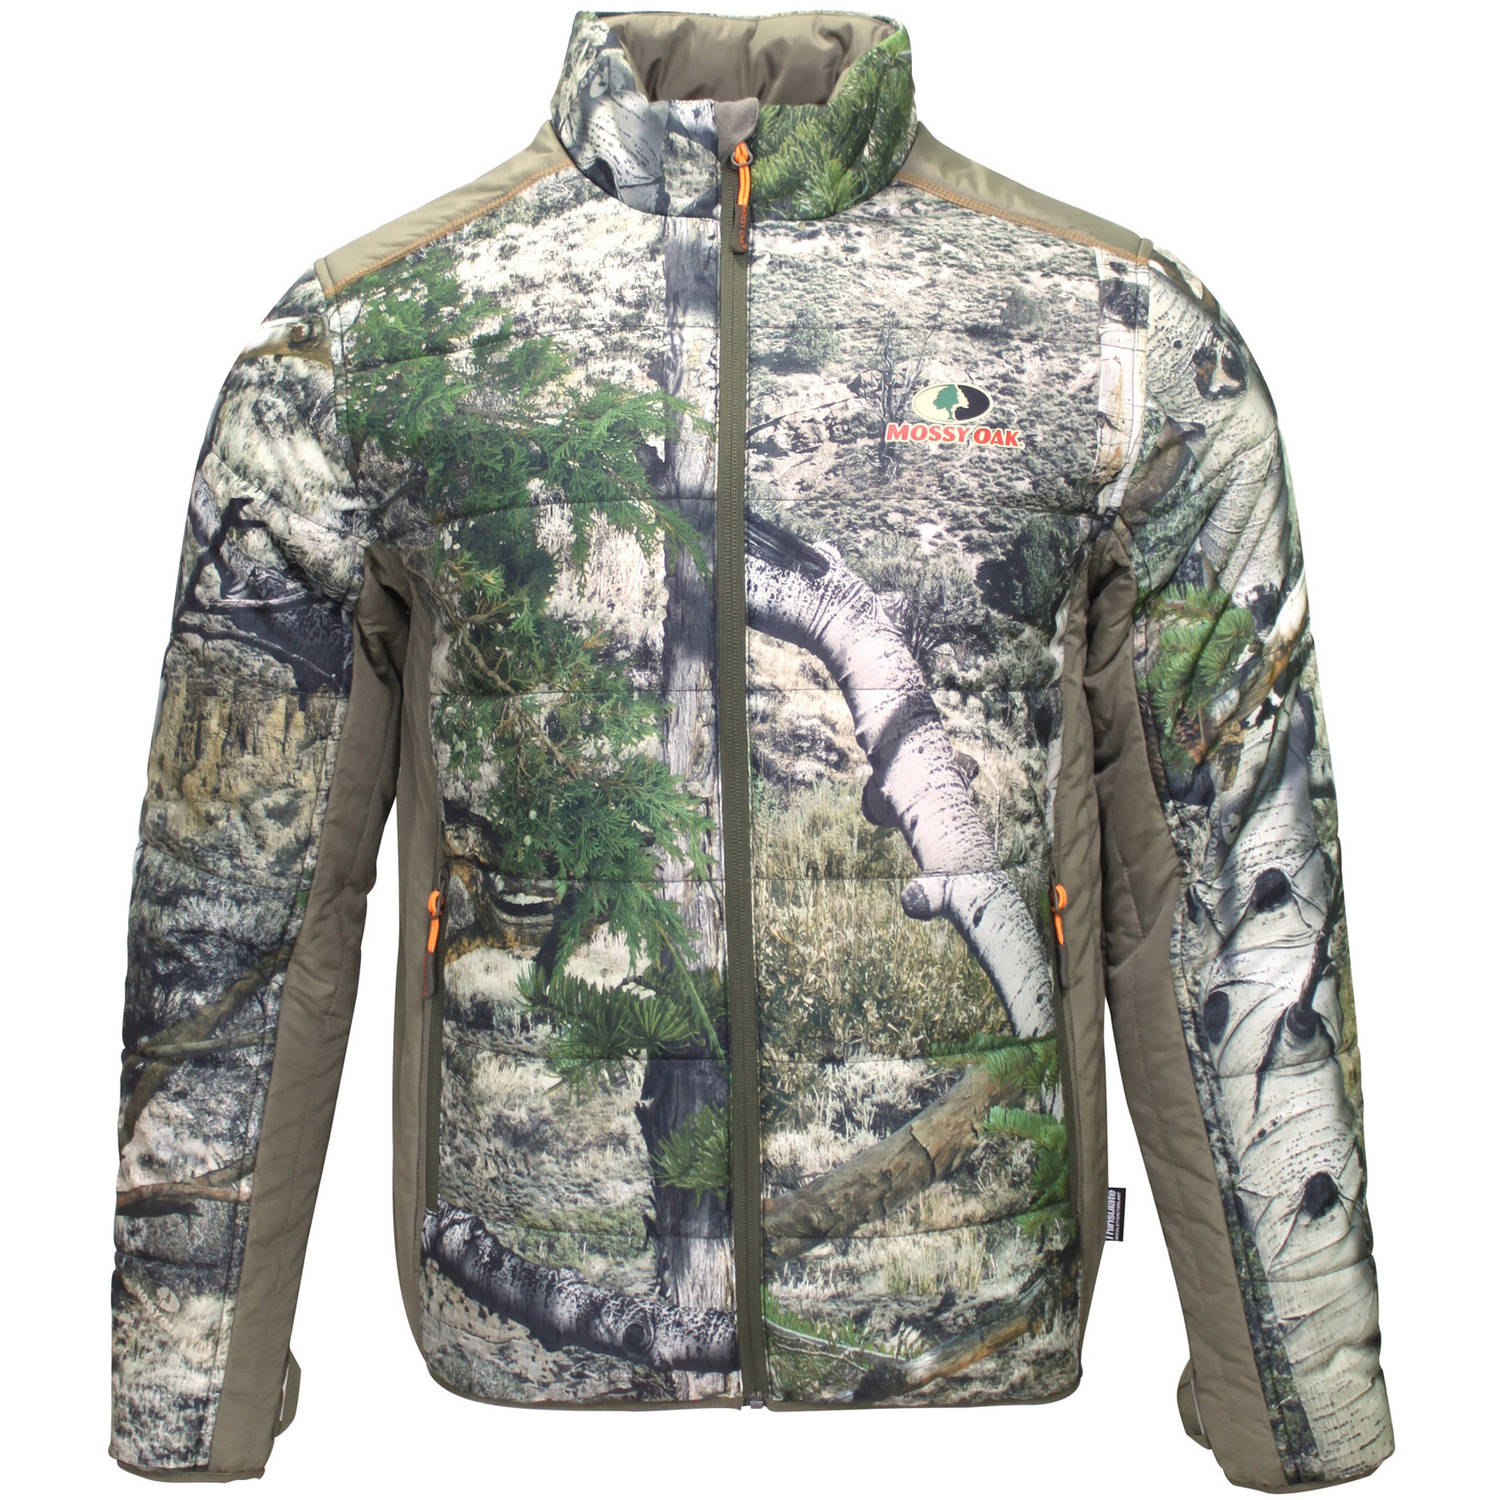 MOSSY OAK MNS JKT INSULATED MOSSY OAK MOUNTAIN COUNTRY by TAKSON INTERNATIONAL SOURCING LIMITED